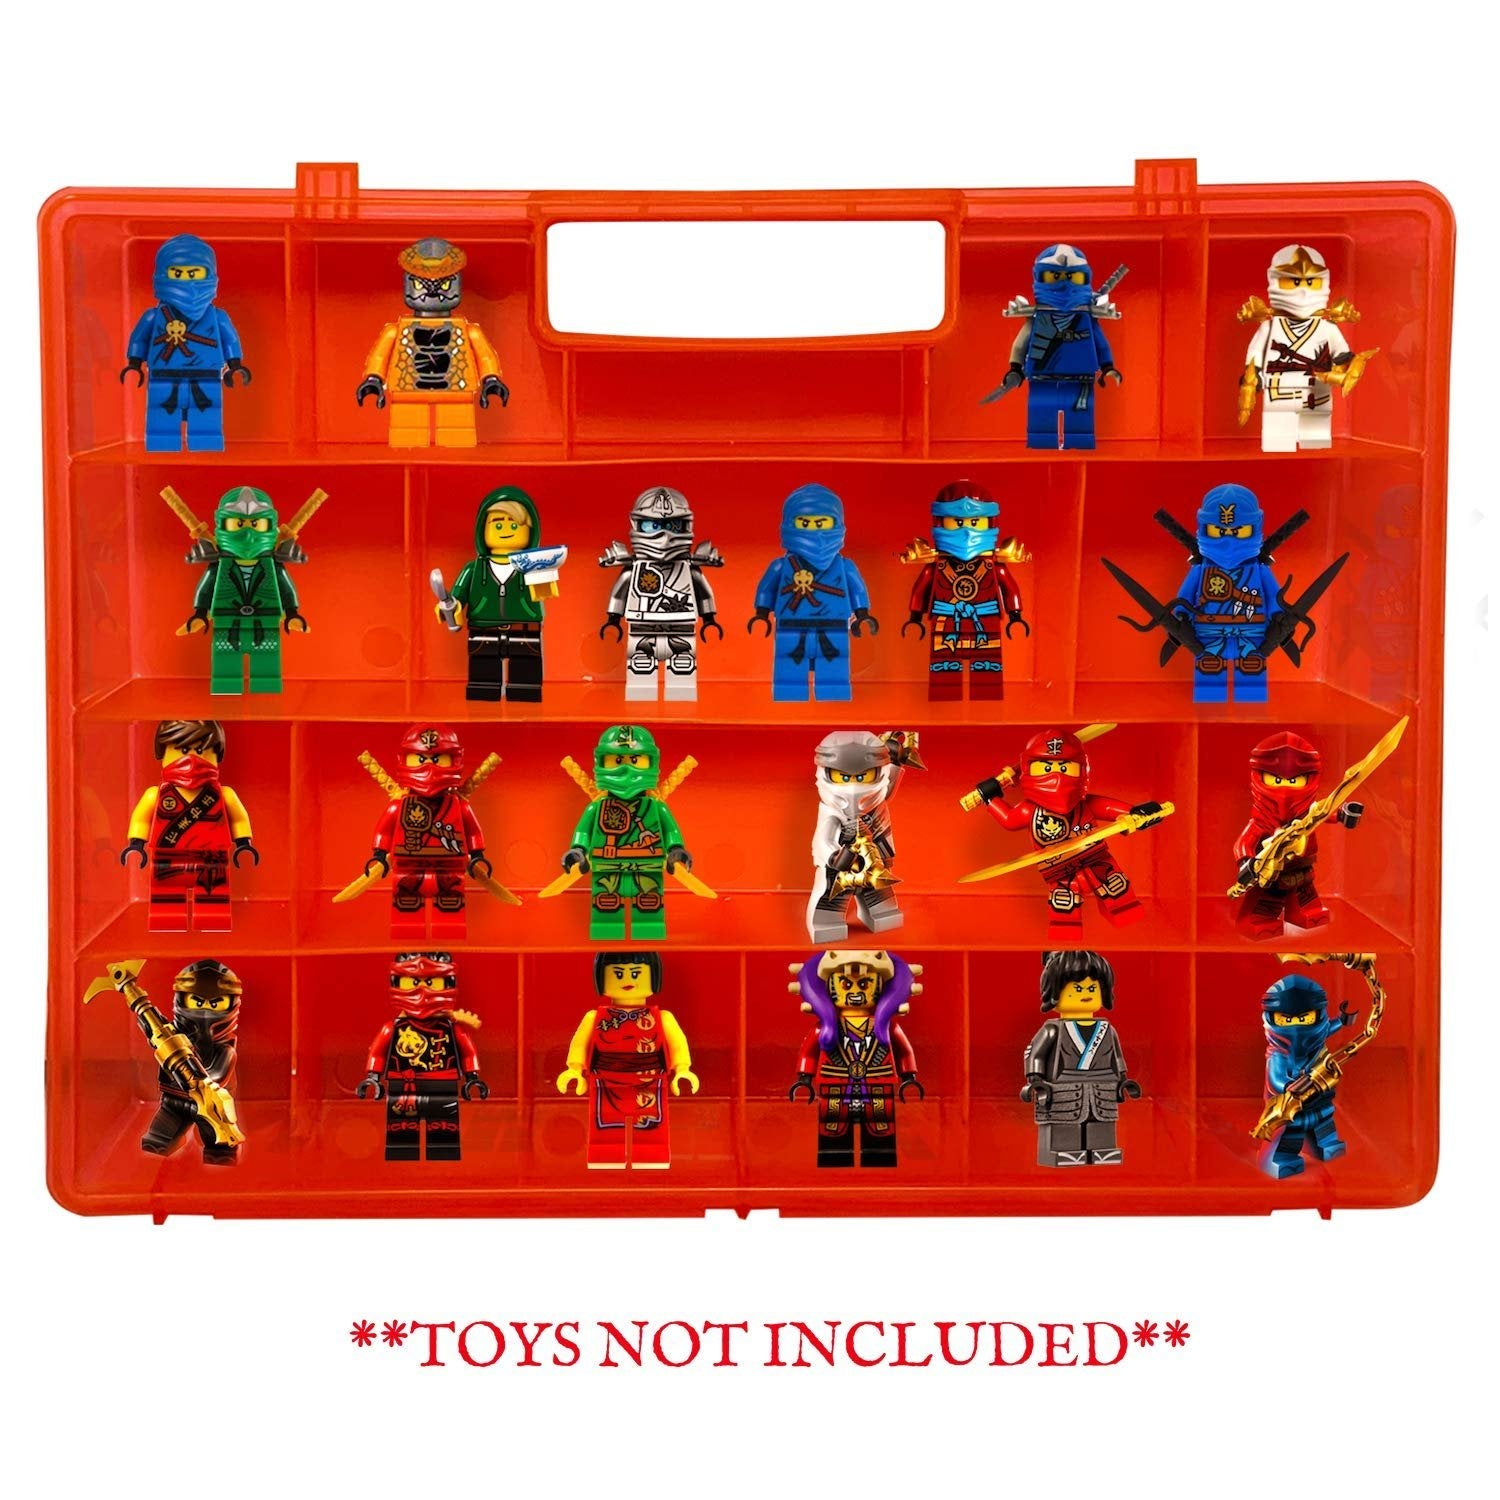 Life Made Better Reinforced Red Toy Carrying Case, Compatible with Lego Ninjago Mini Ninja Figurines, This Box is not Created or Sold by Lego